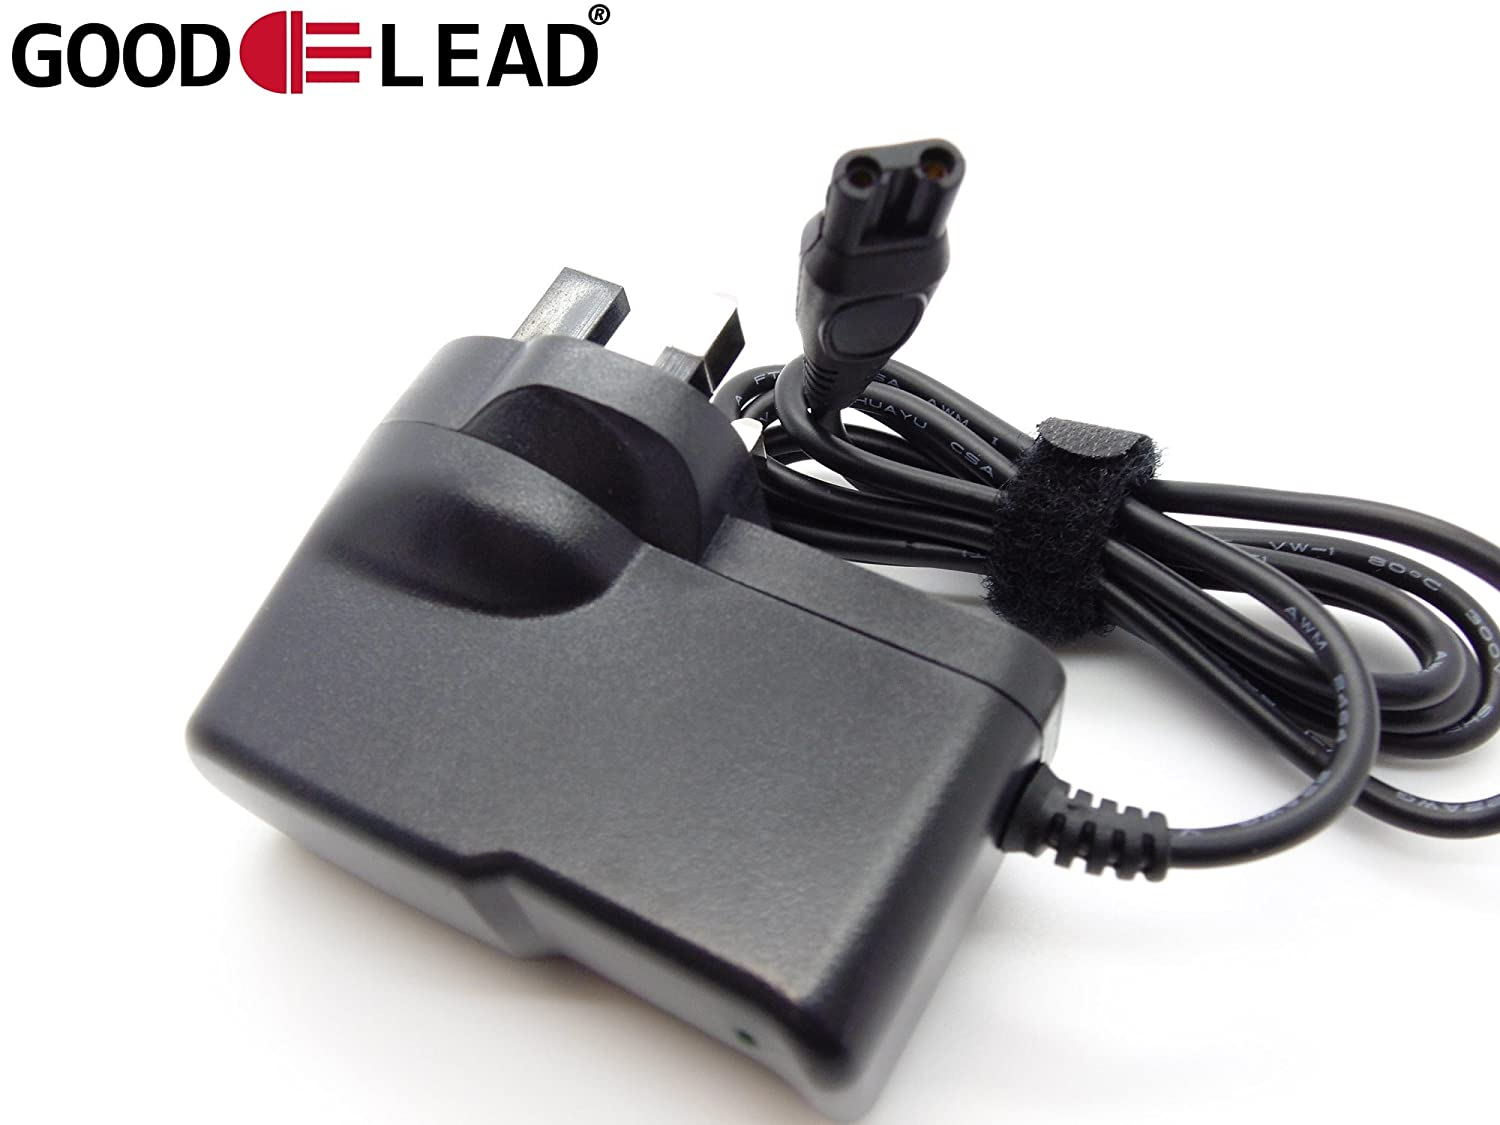 GOOD LEAD Philips Model QC5530 40 shavor razor Home Charger AC DC Power Supply Lead NEW